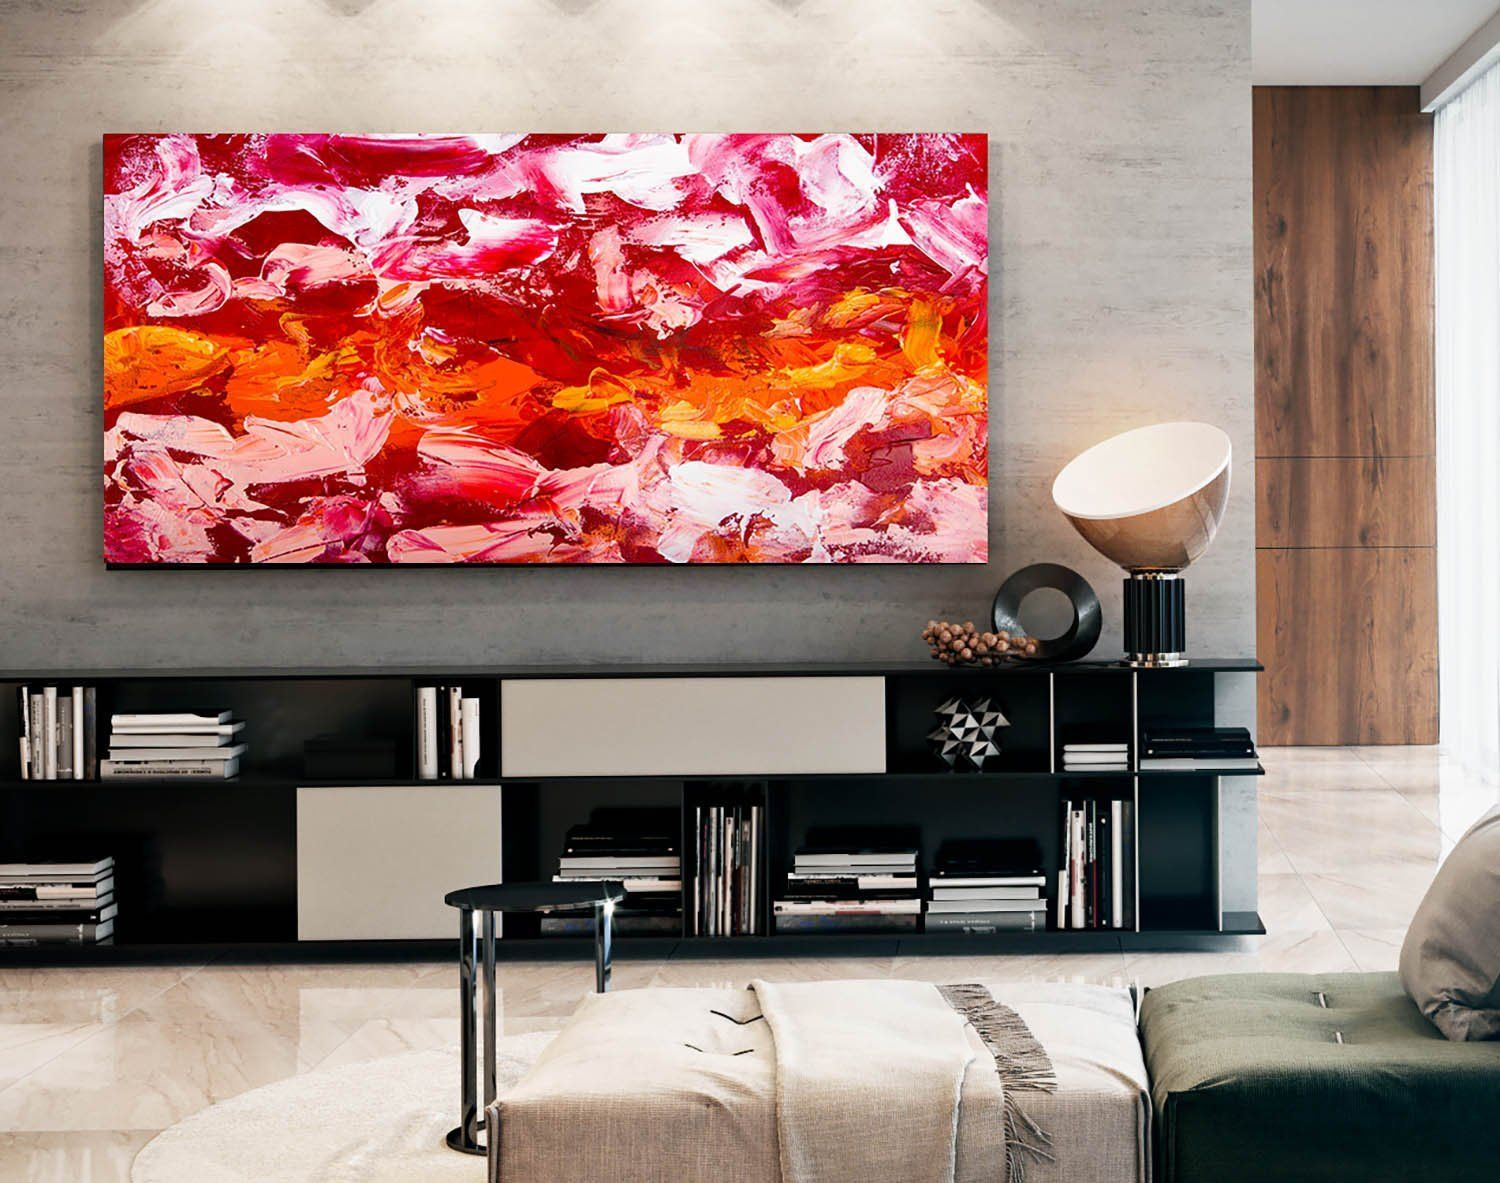 How To Add Art To Your High Tech Lifestyle